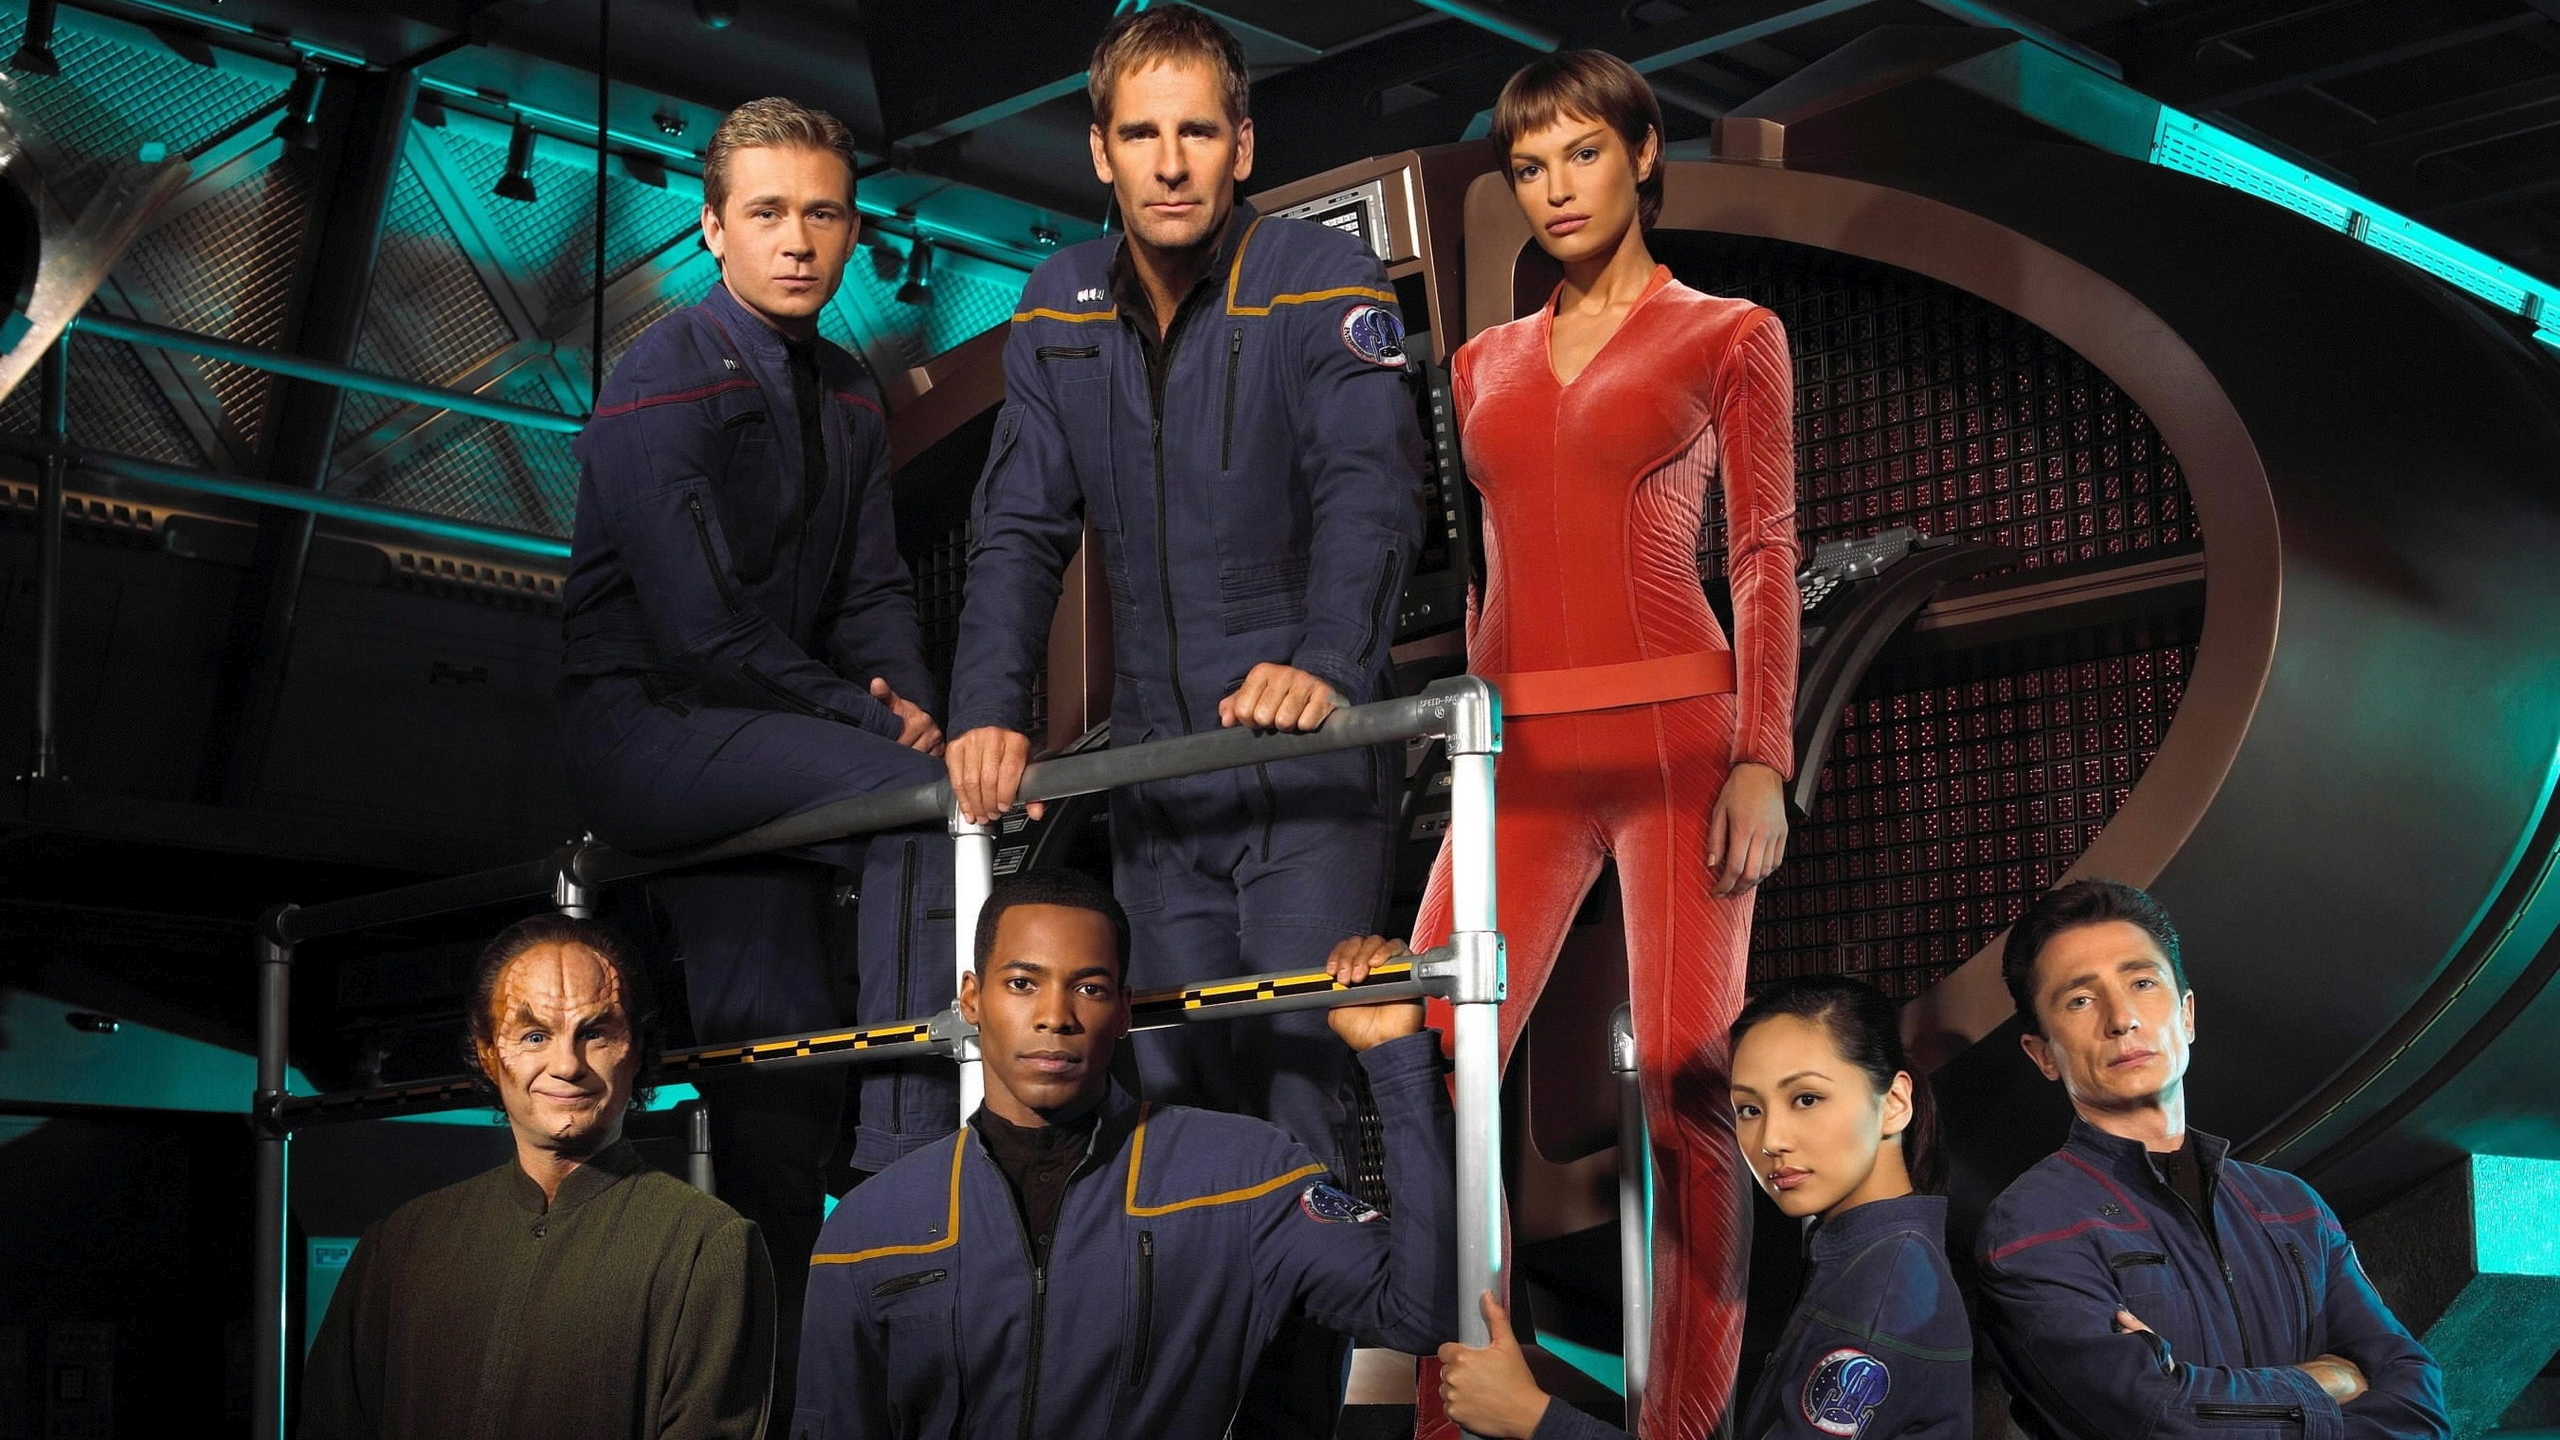 Top Star Trek: Enterprise Wallpapers, Pictures, Images VV23